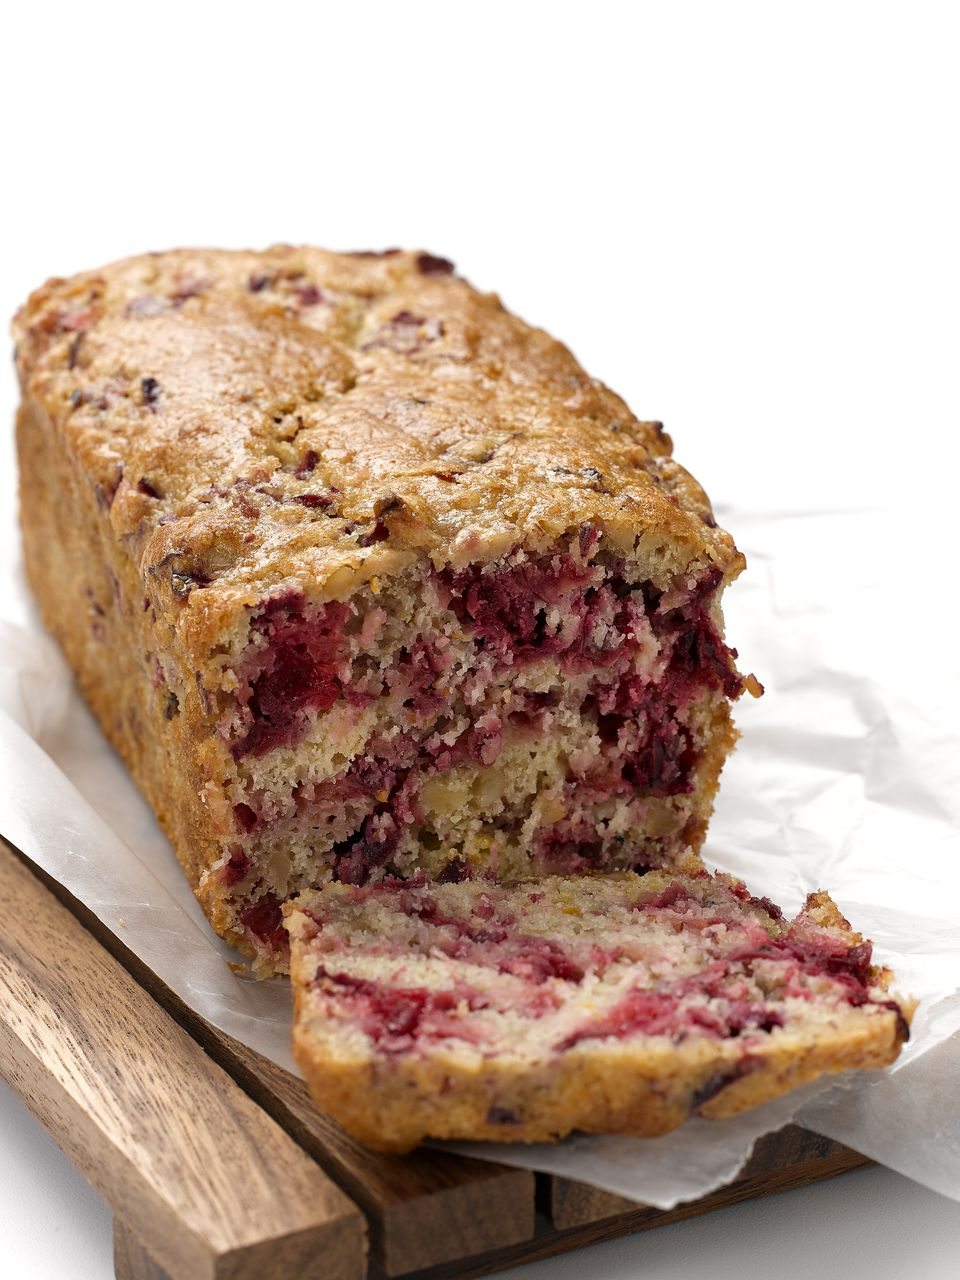 Cranberrybananabread-GettyImages-698196412-59f36d13054ad90010db0d86.jpg